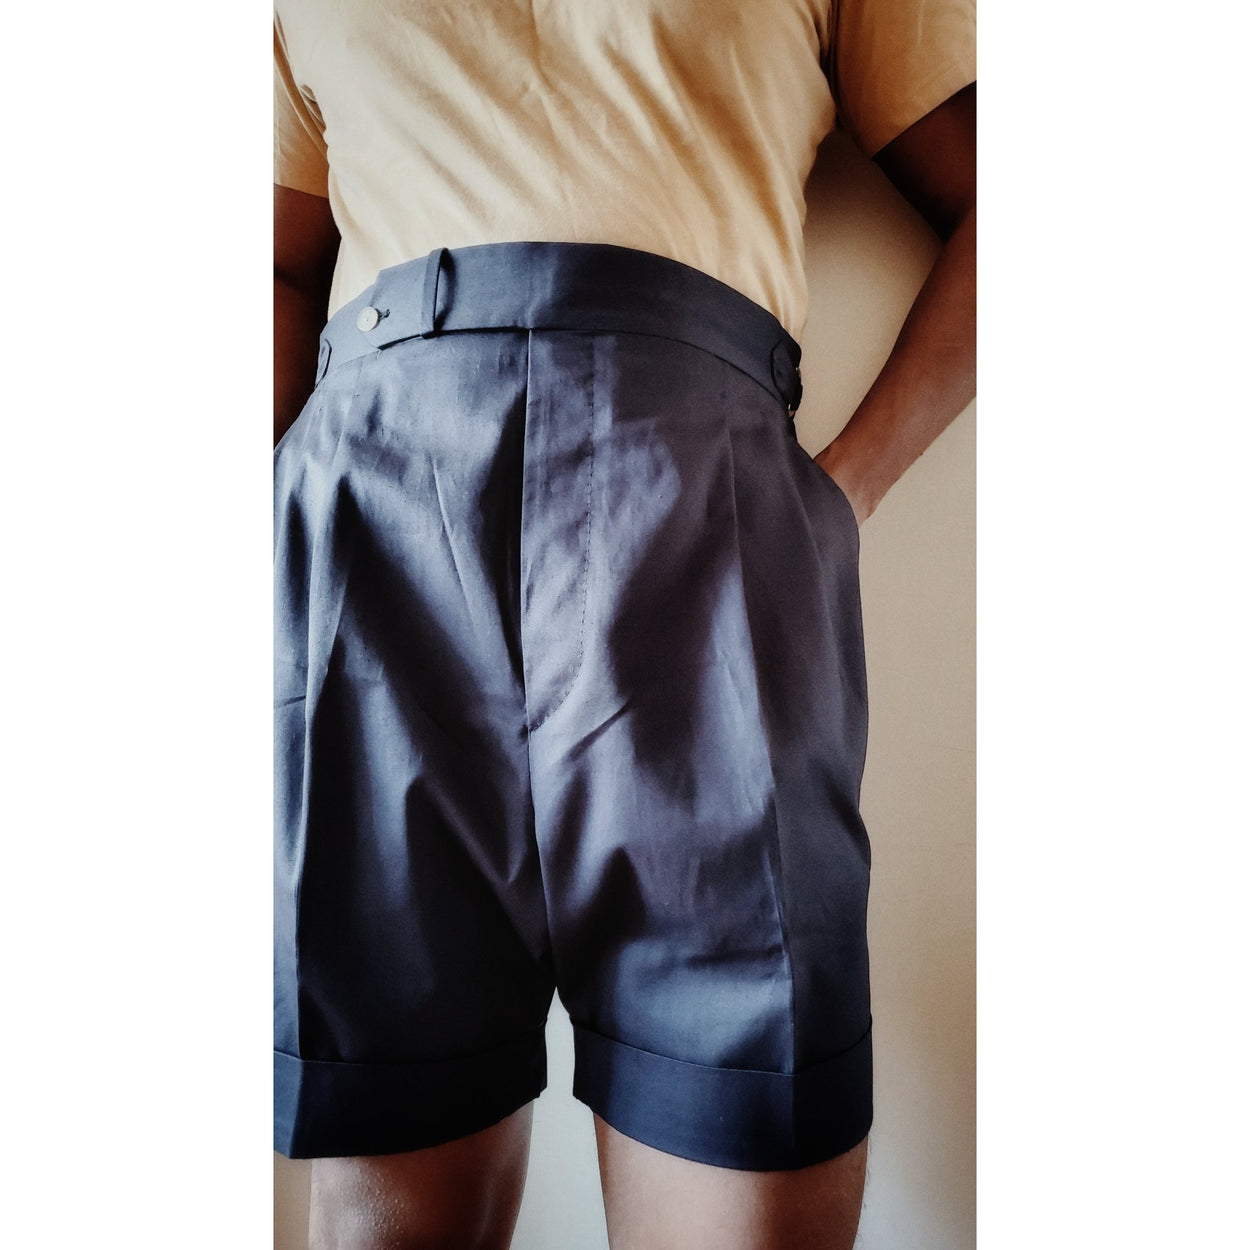 High Waisted Shorts - Cotton Twill - X Of Pentacles